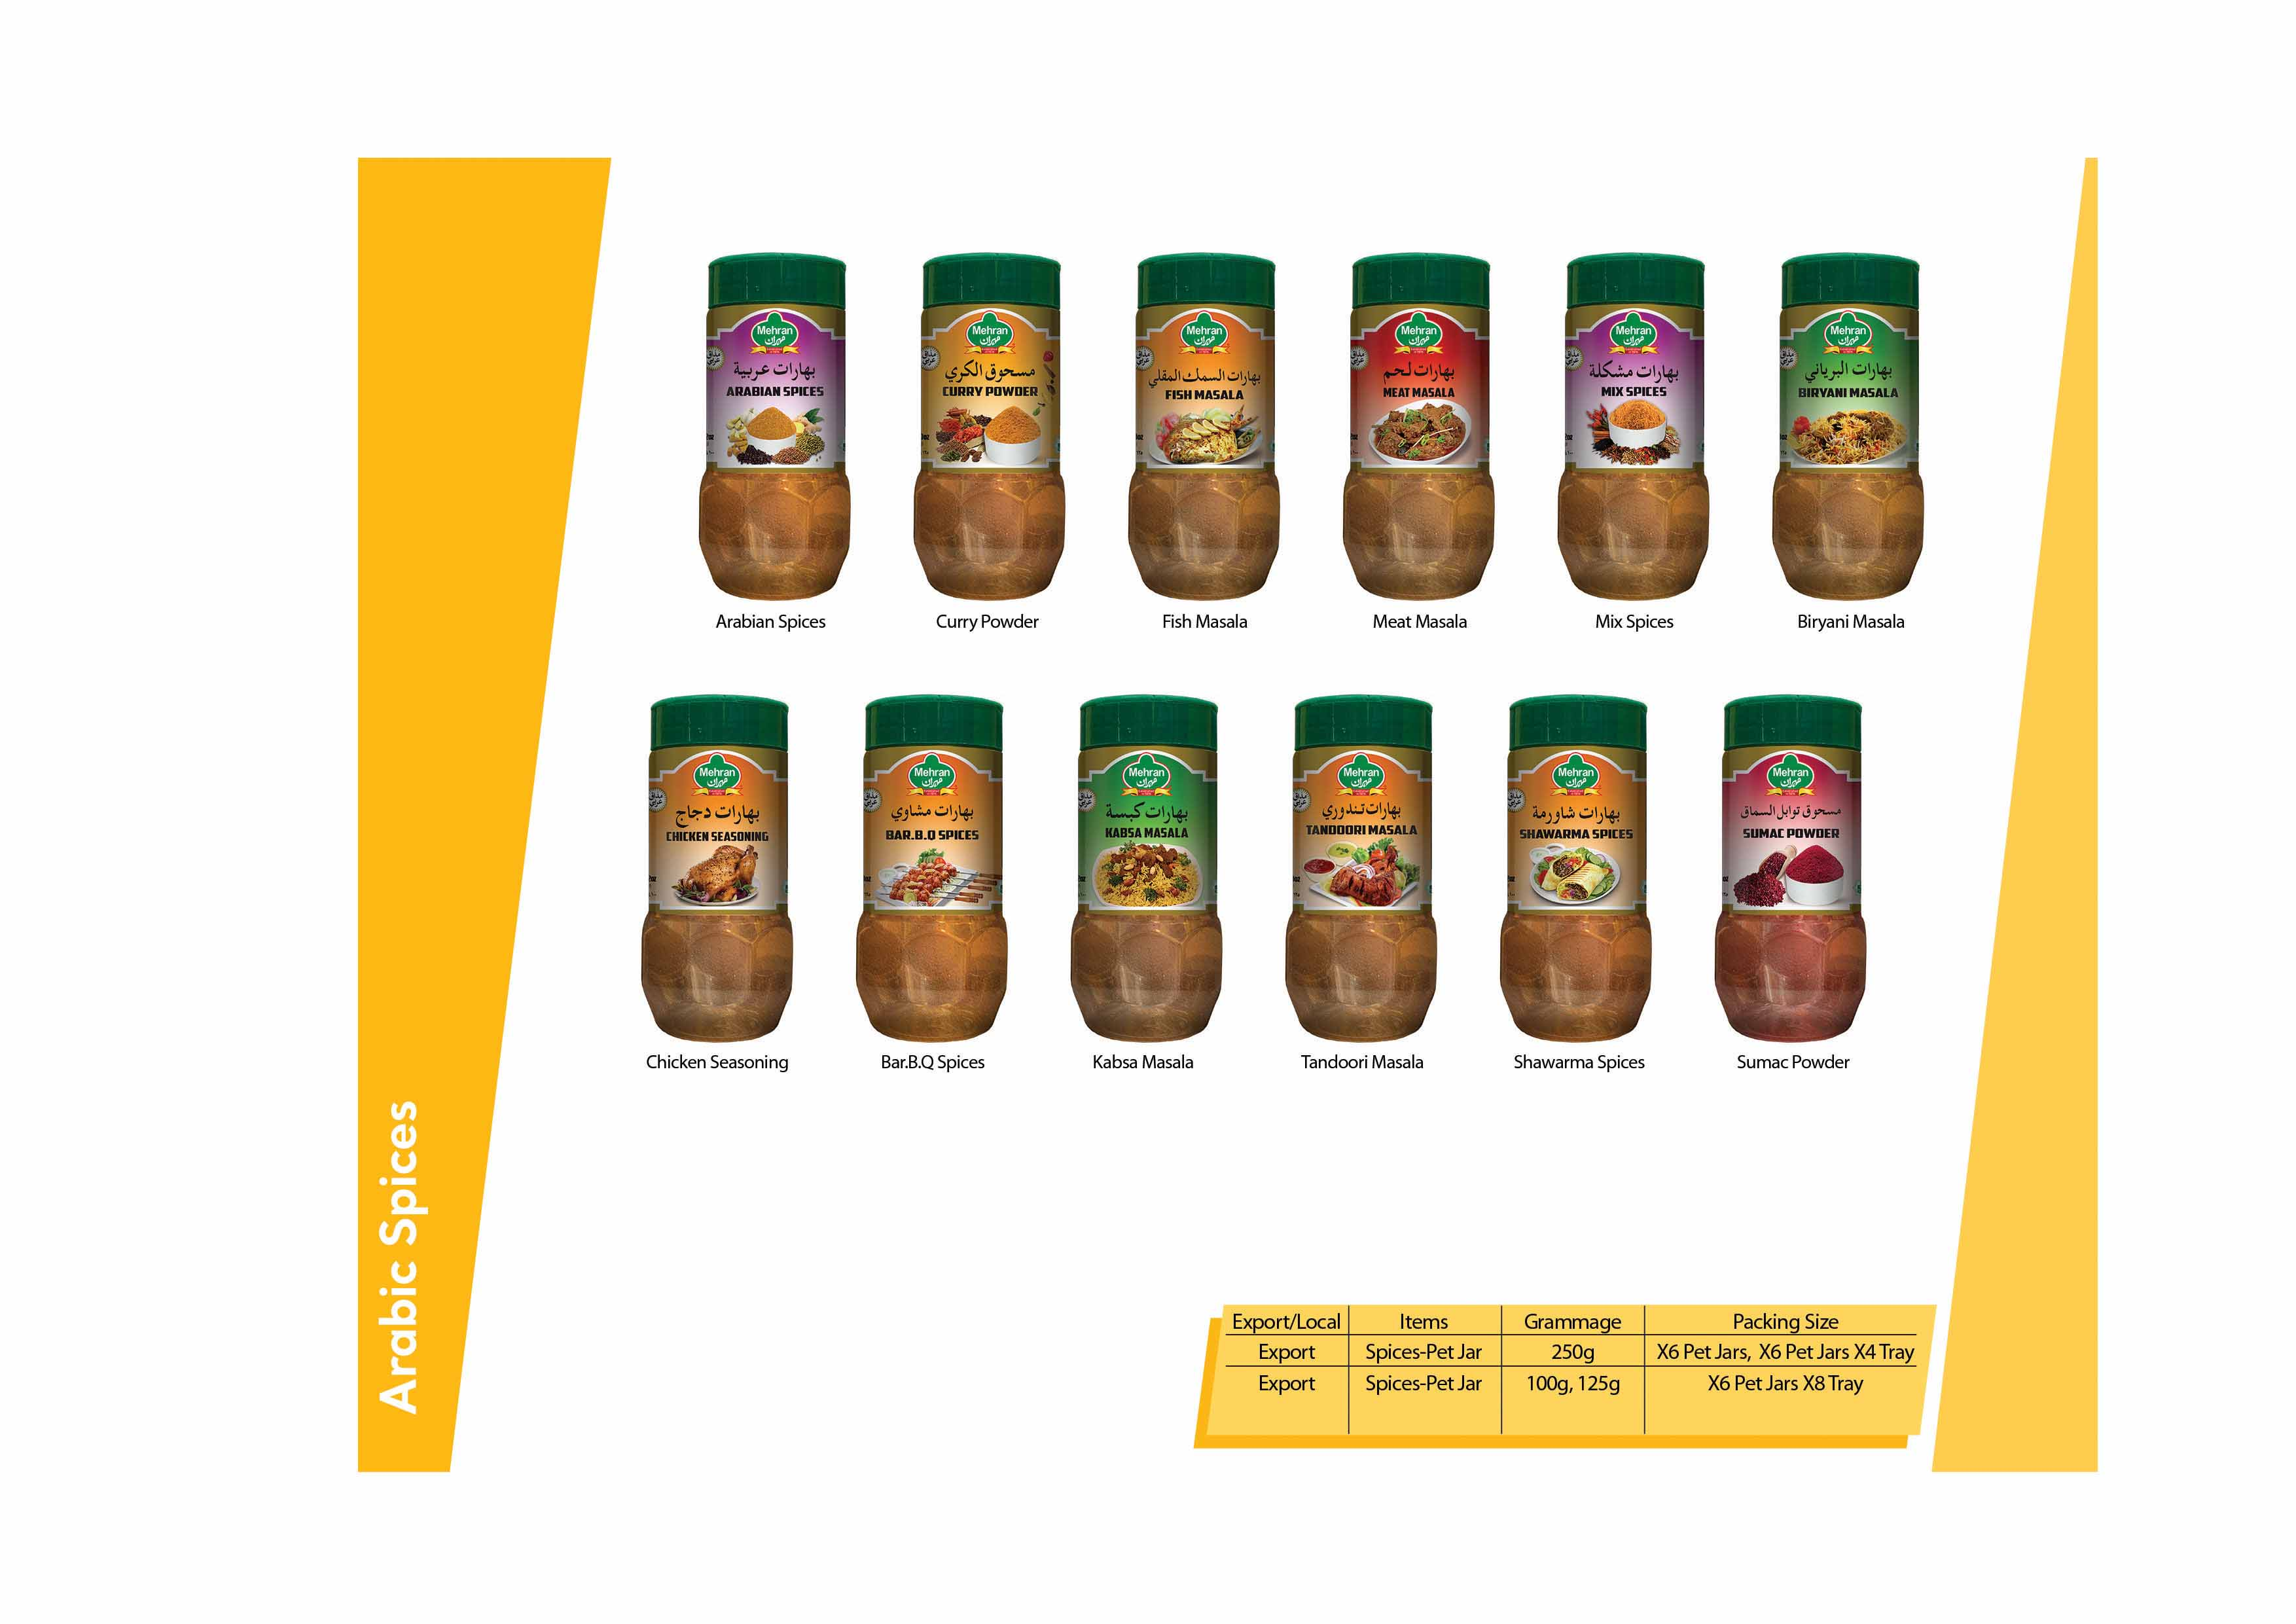 Mehran Straight Spices & Arabic Spices